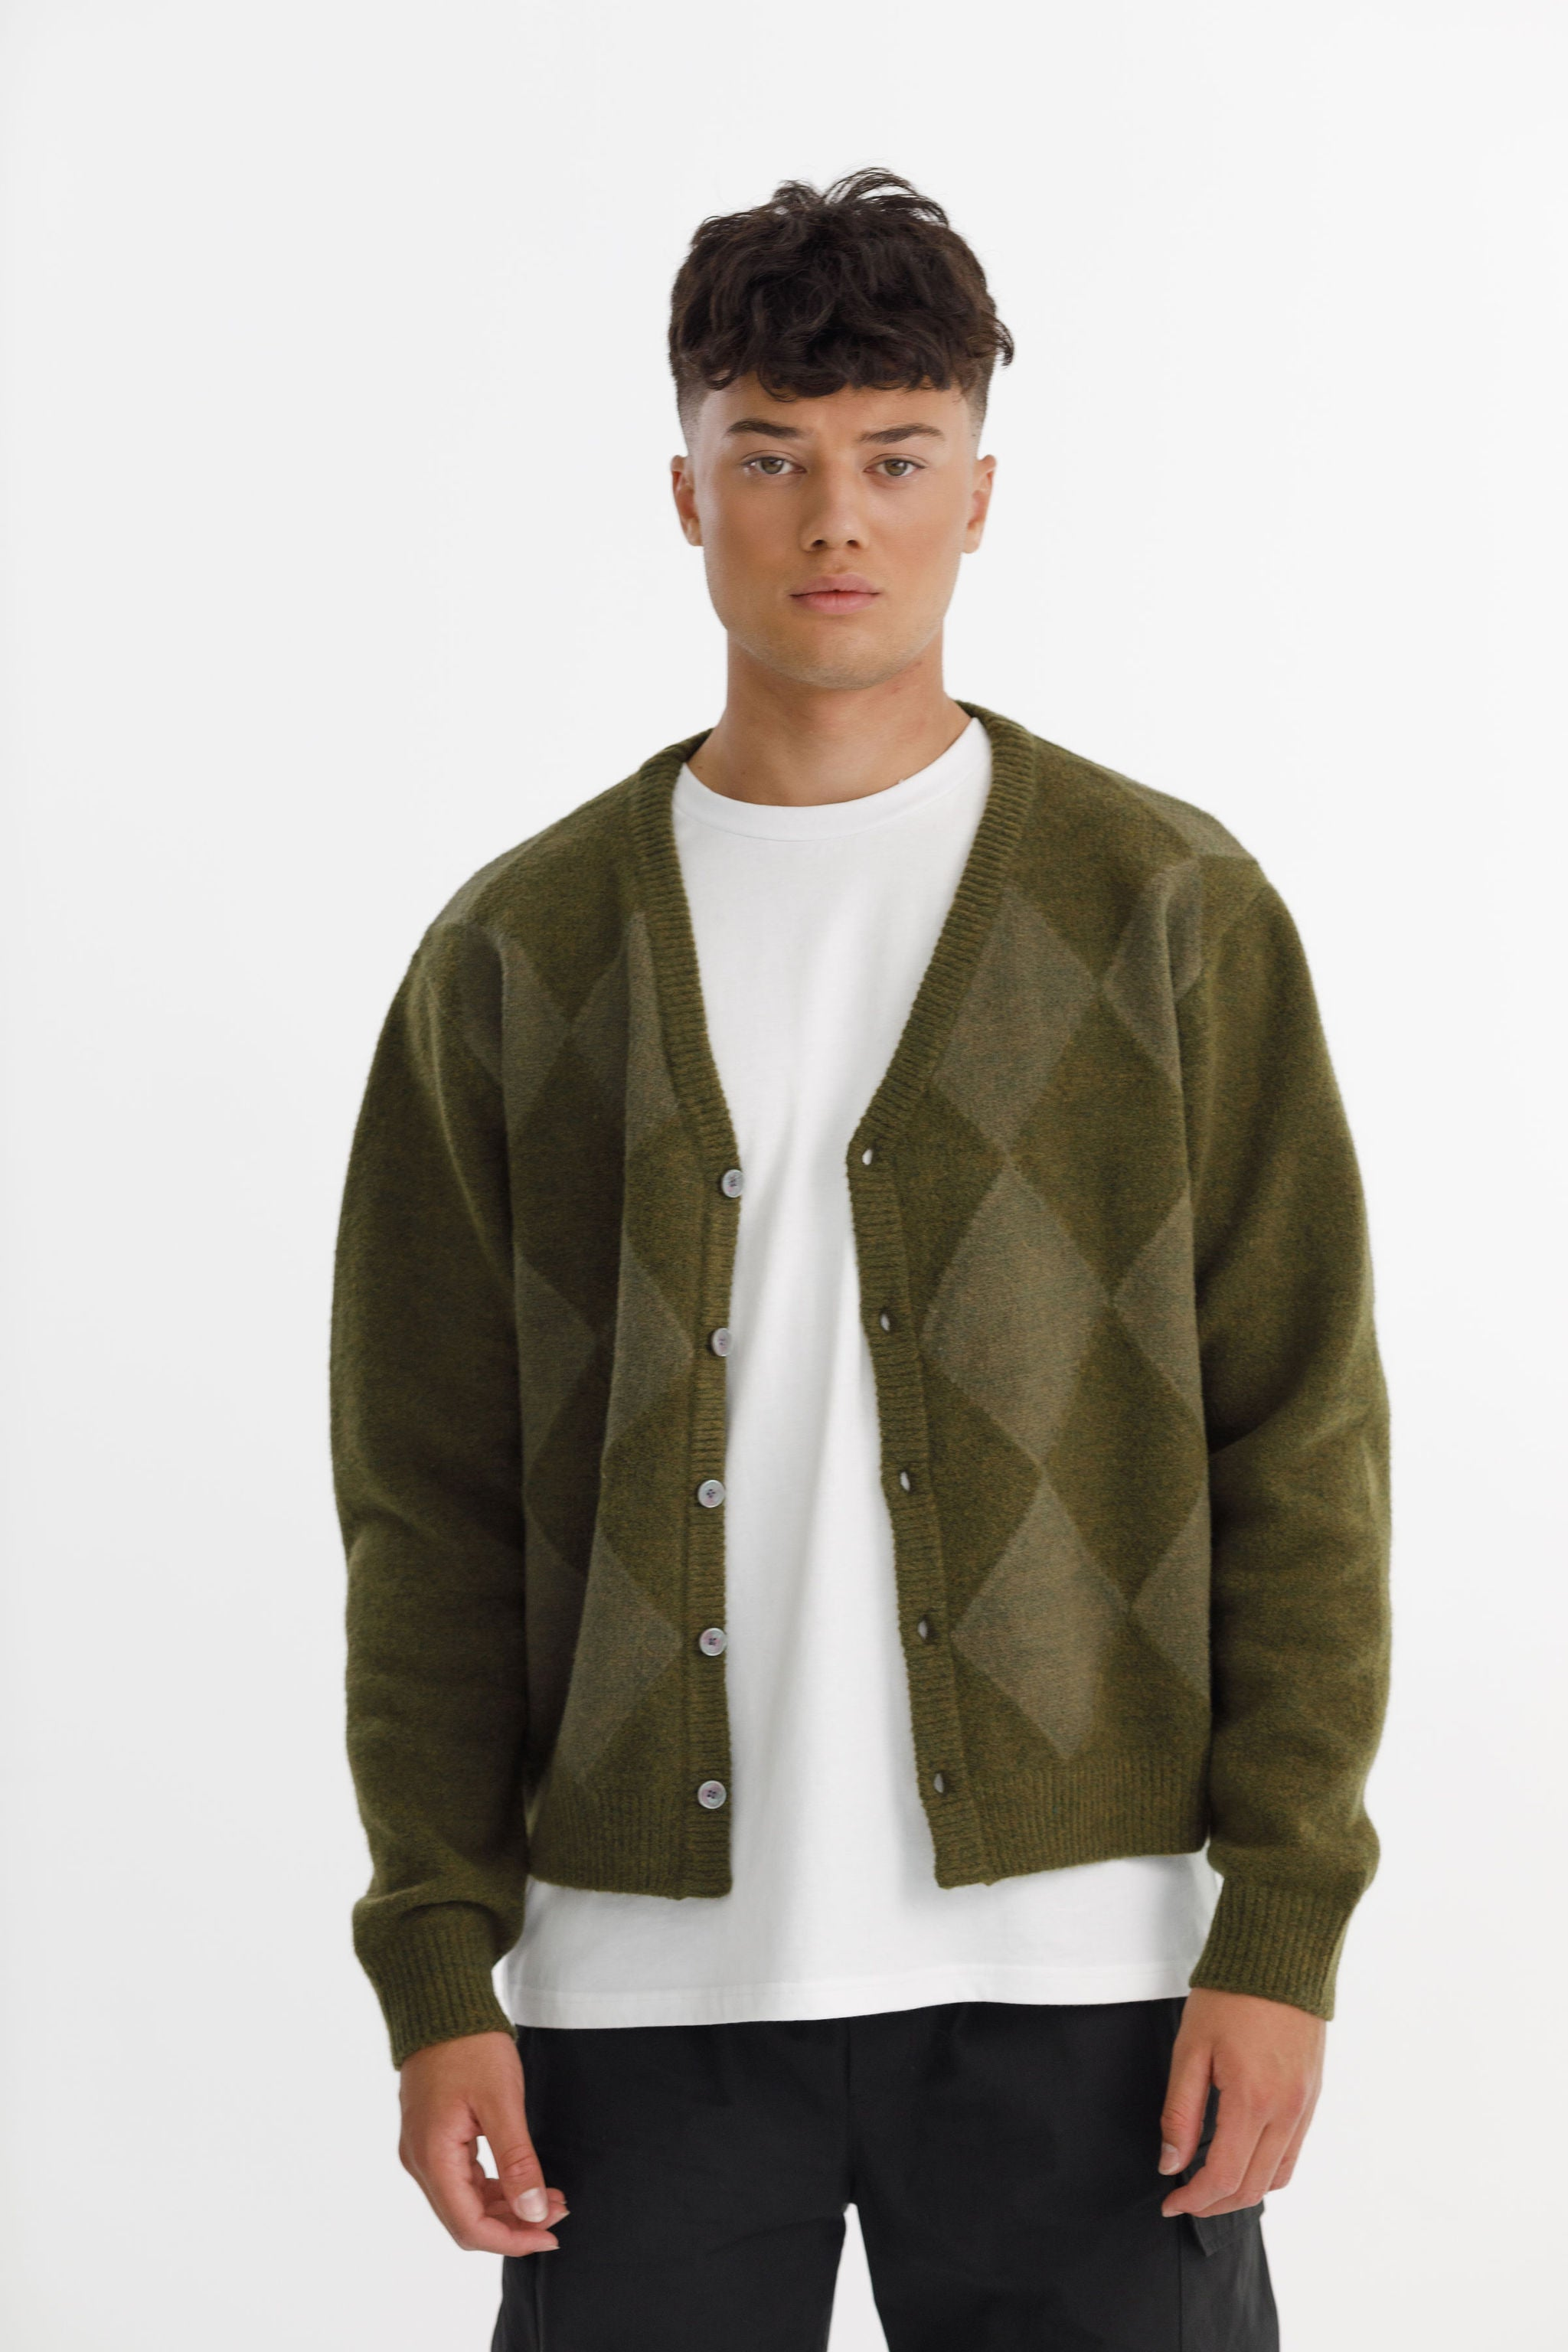 GRAND CARDI - Army/Green